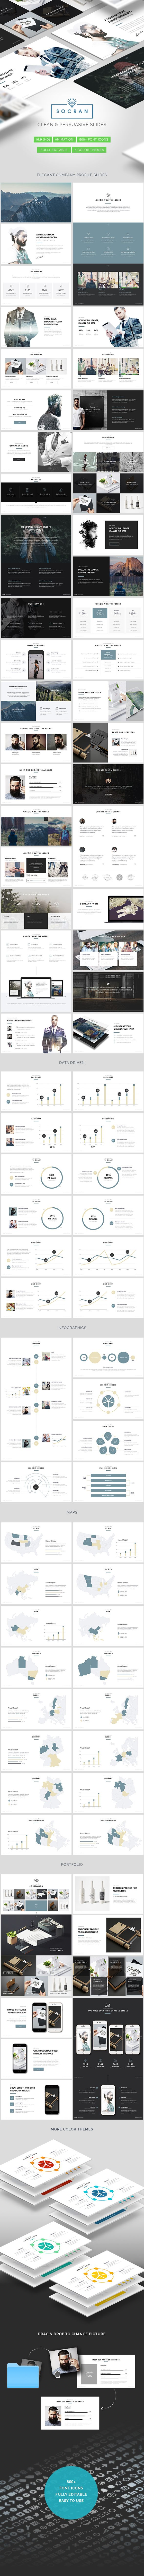 SOCRAN - Clean & Modern Keynote Presentation Template #design #slides Download: http://graphicriver.net/item/socran-clean-modern-keynote-template/14260452?ref=ksioks